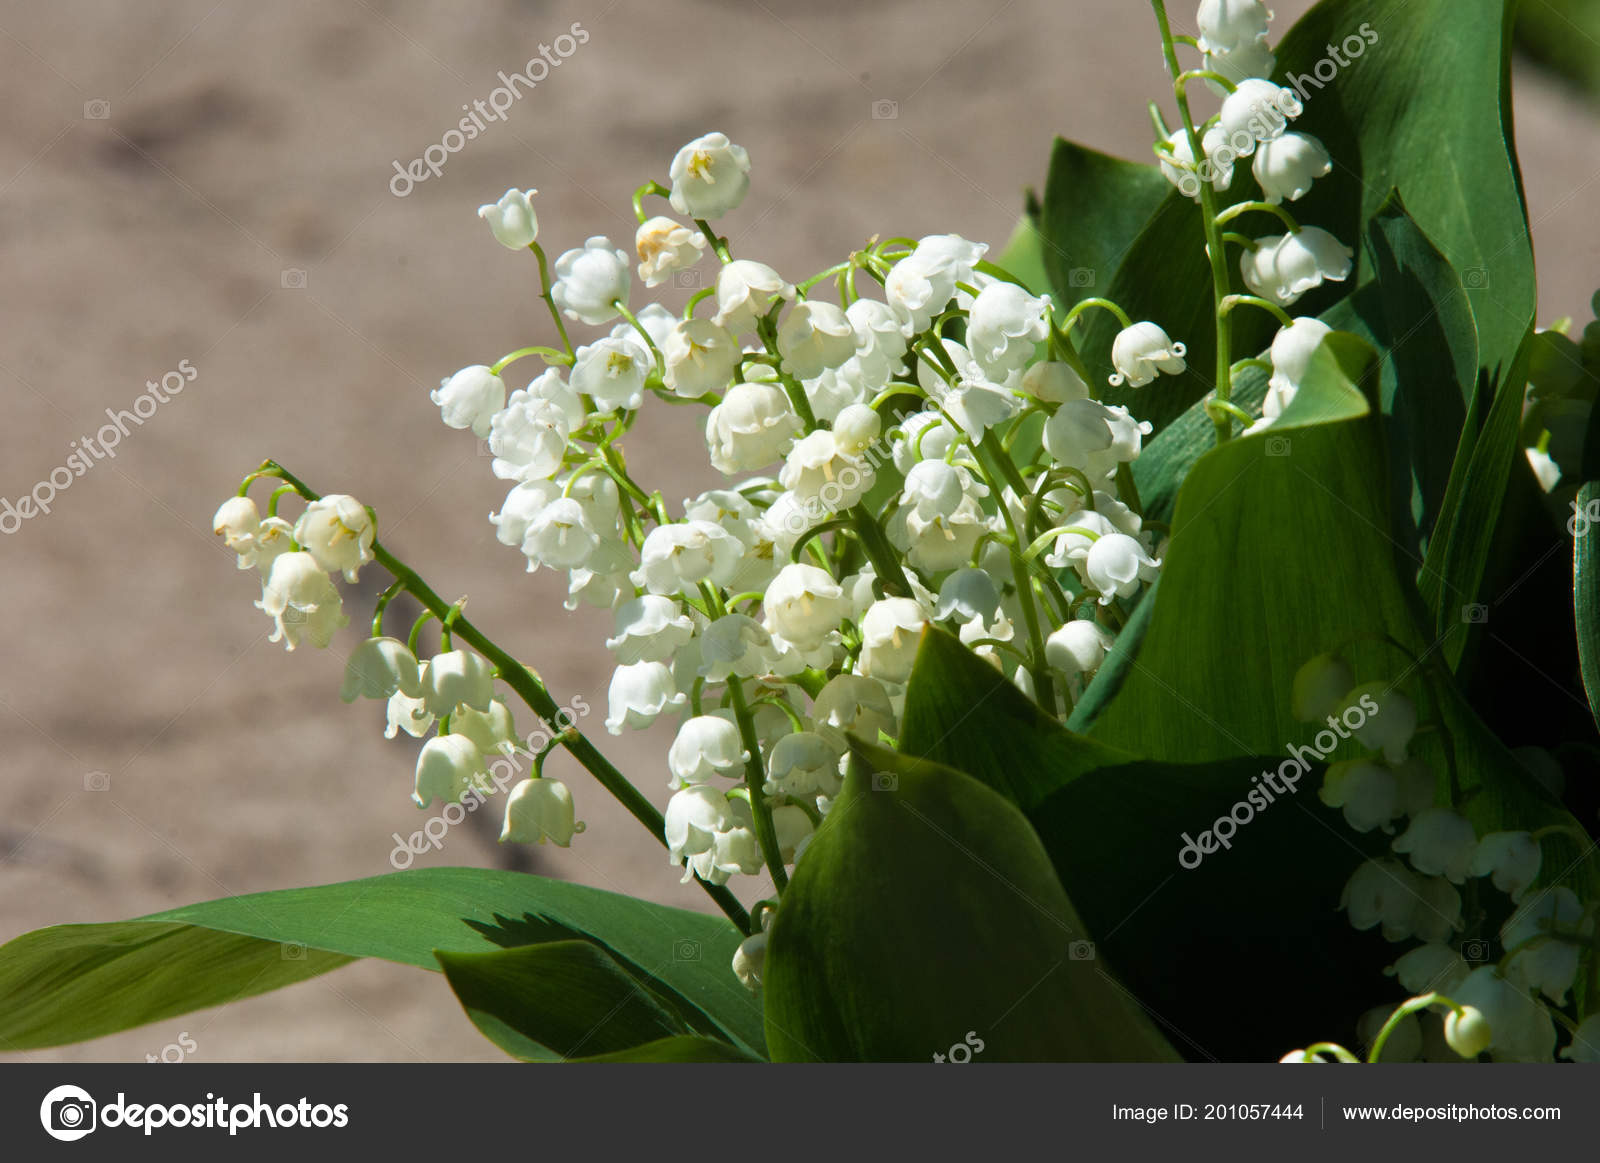 Pictures : lilies of the valley flowers | Lily Valley Flowers Natural  Background Blooming Lilies Valley Lilies Valley — Stock Photo © ekina1  #201057444